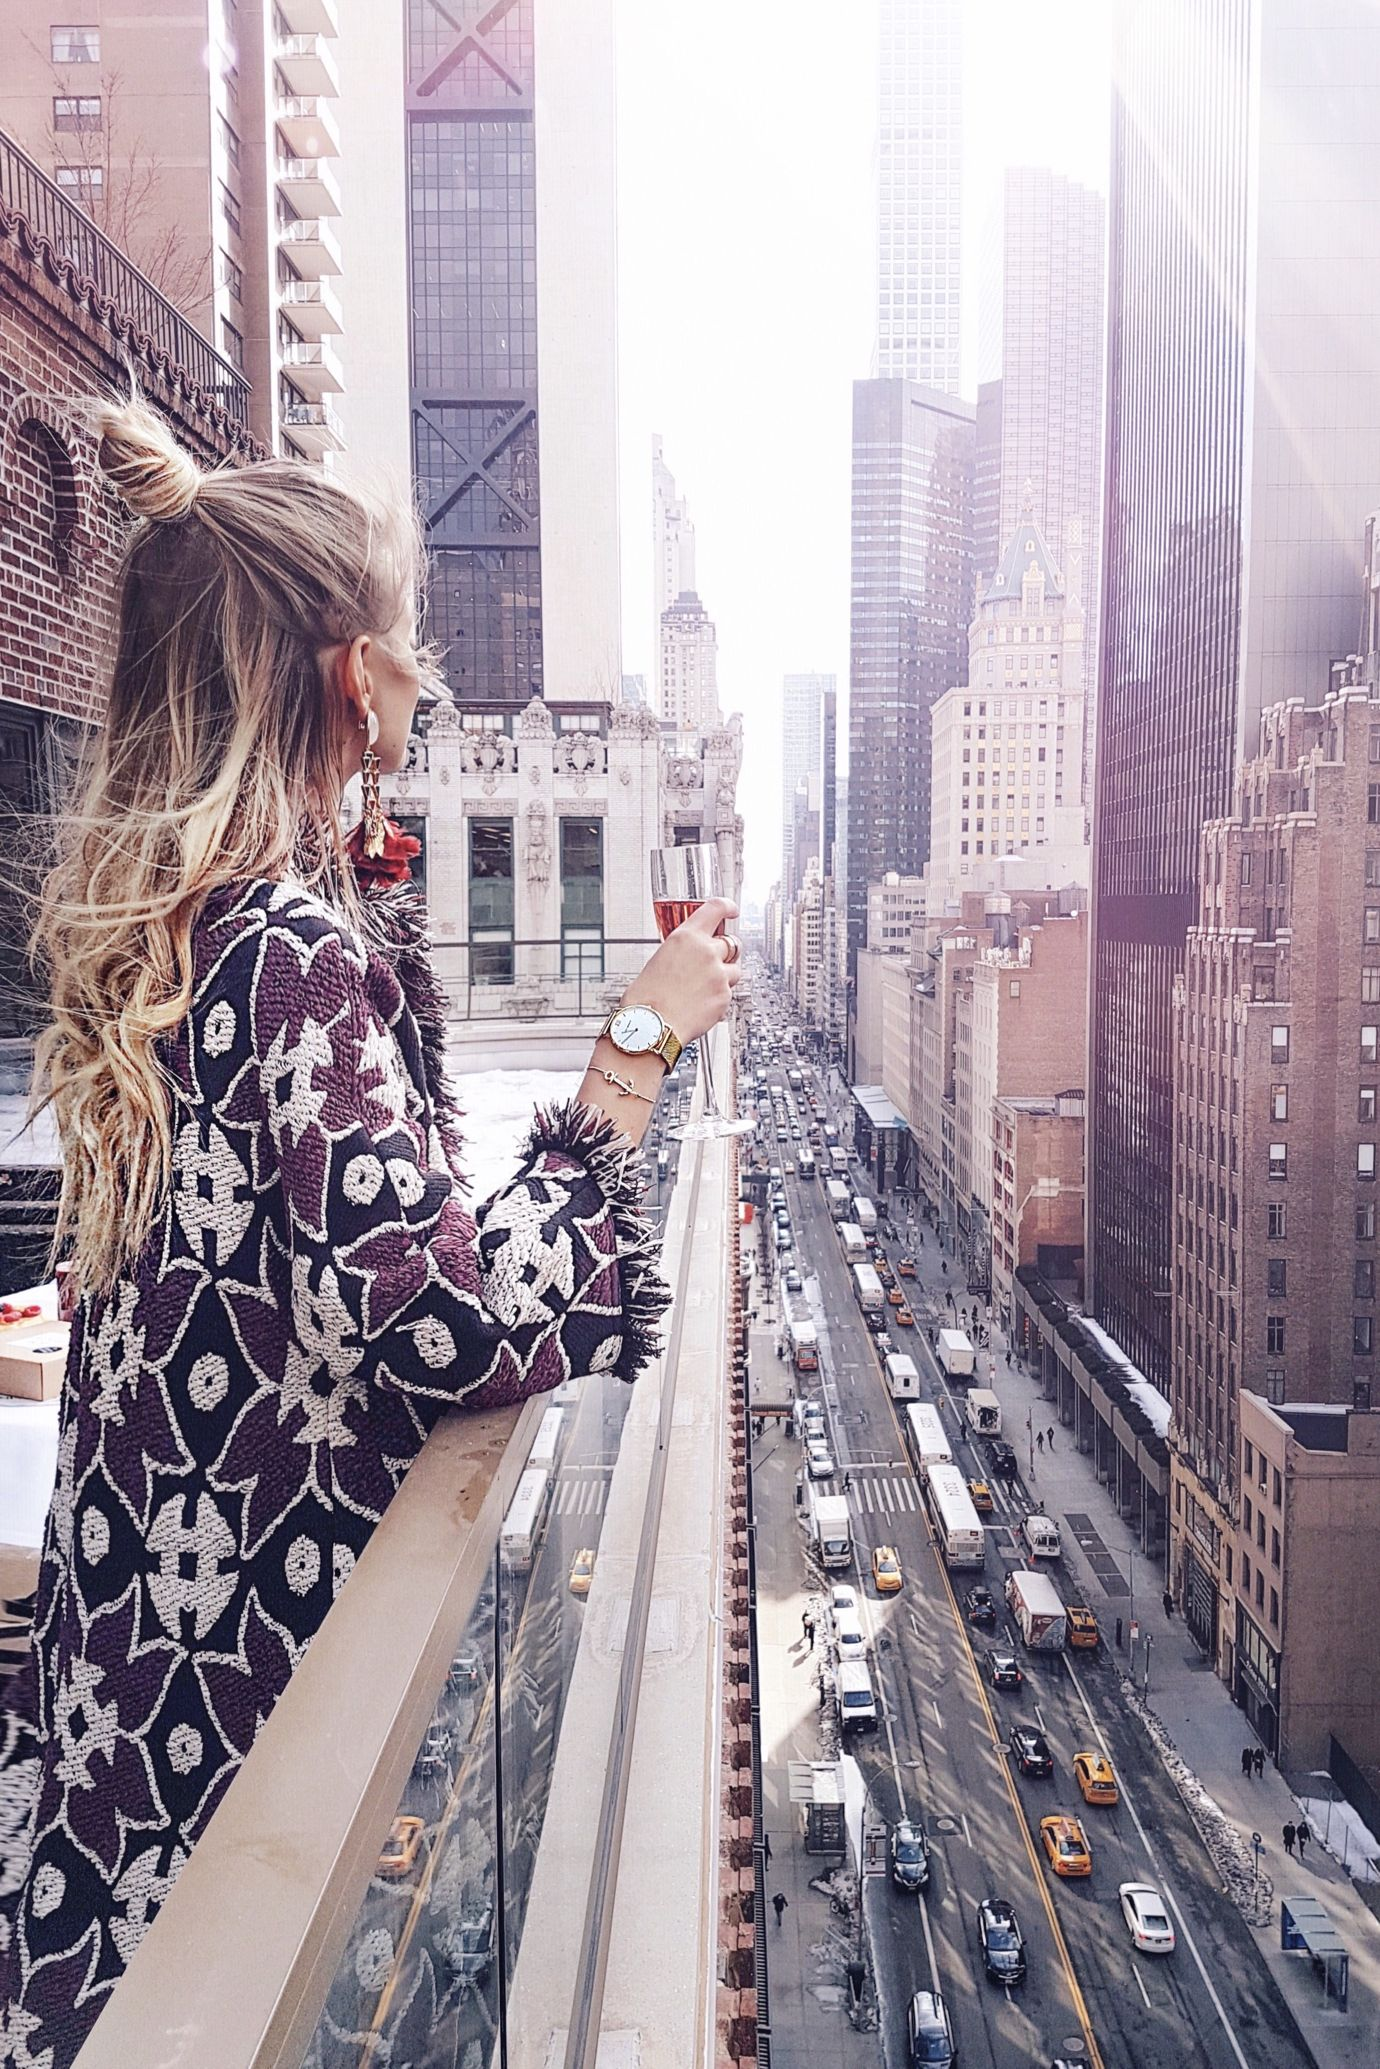 New York Bilder Monday Update 44 Truly New York Pinterest New York Bilder